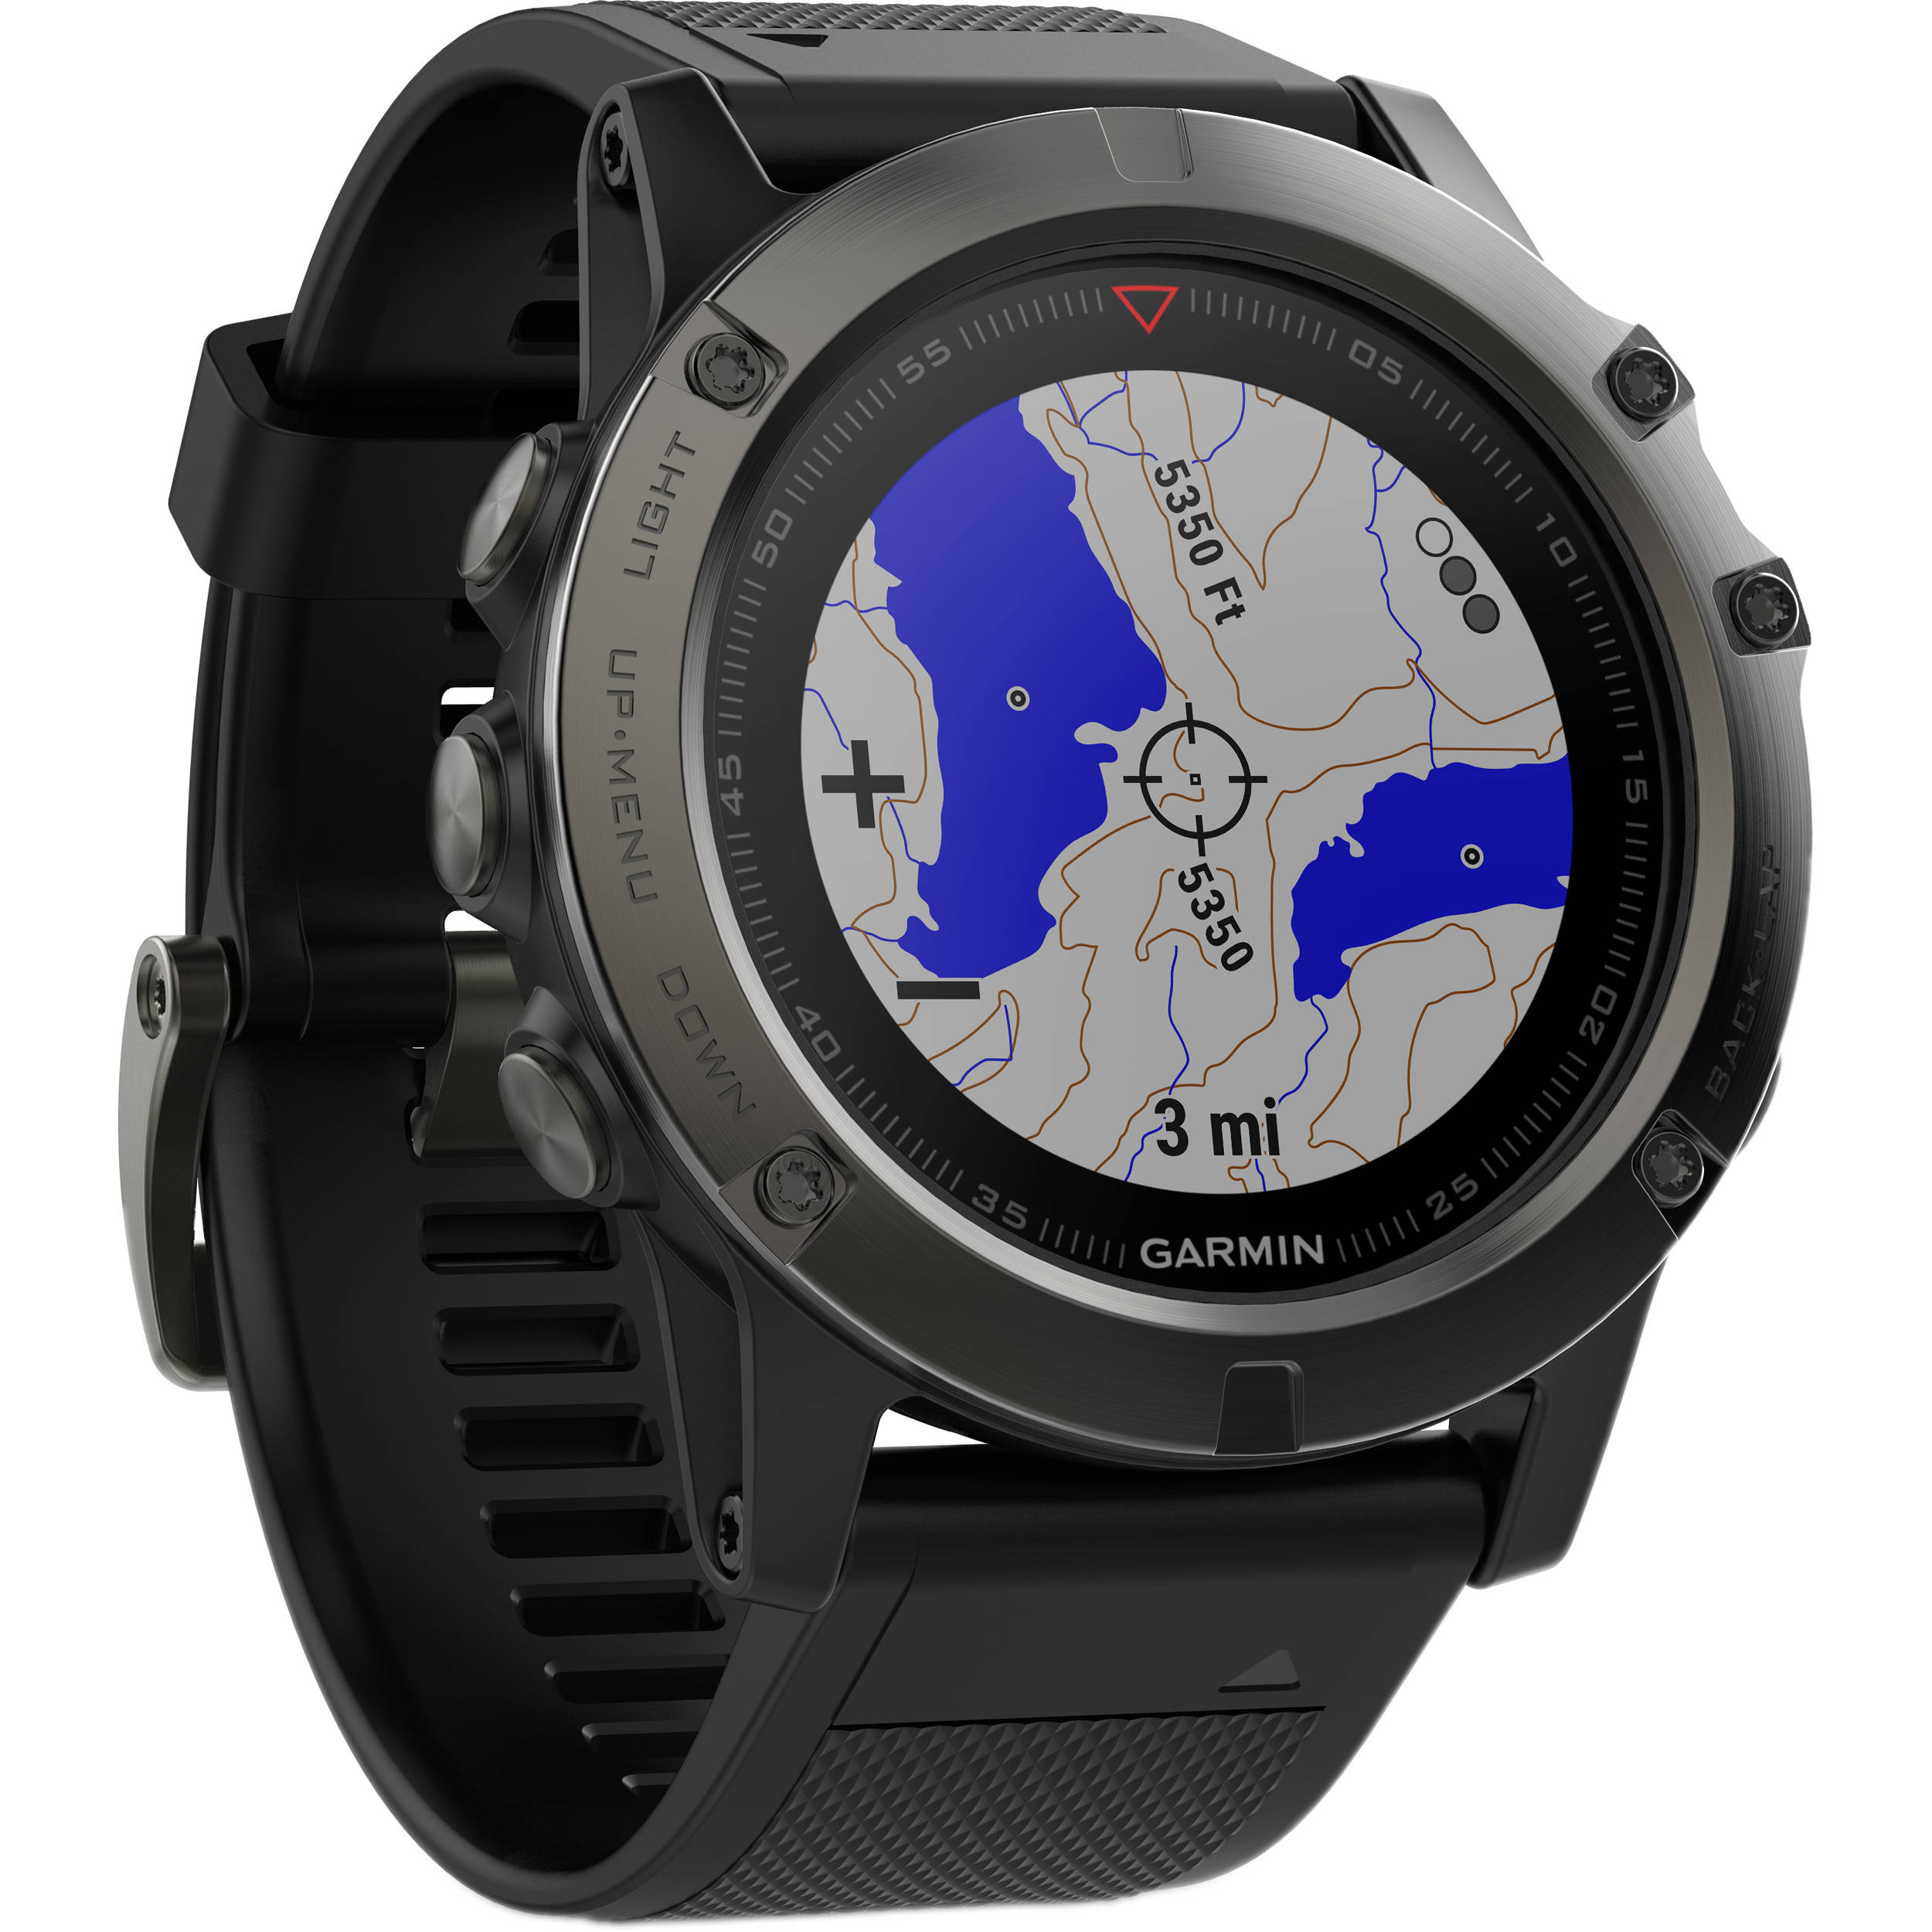 features is rugged ta range and best garmin sports smart review fenix tracking the variety activities a watch navigation outdoor multisport of wiredexcellent maps in feature watches powerful you can buy supports accessories wide